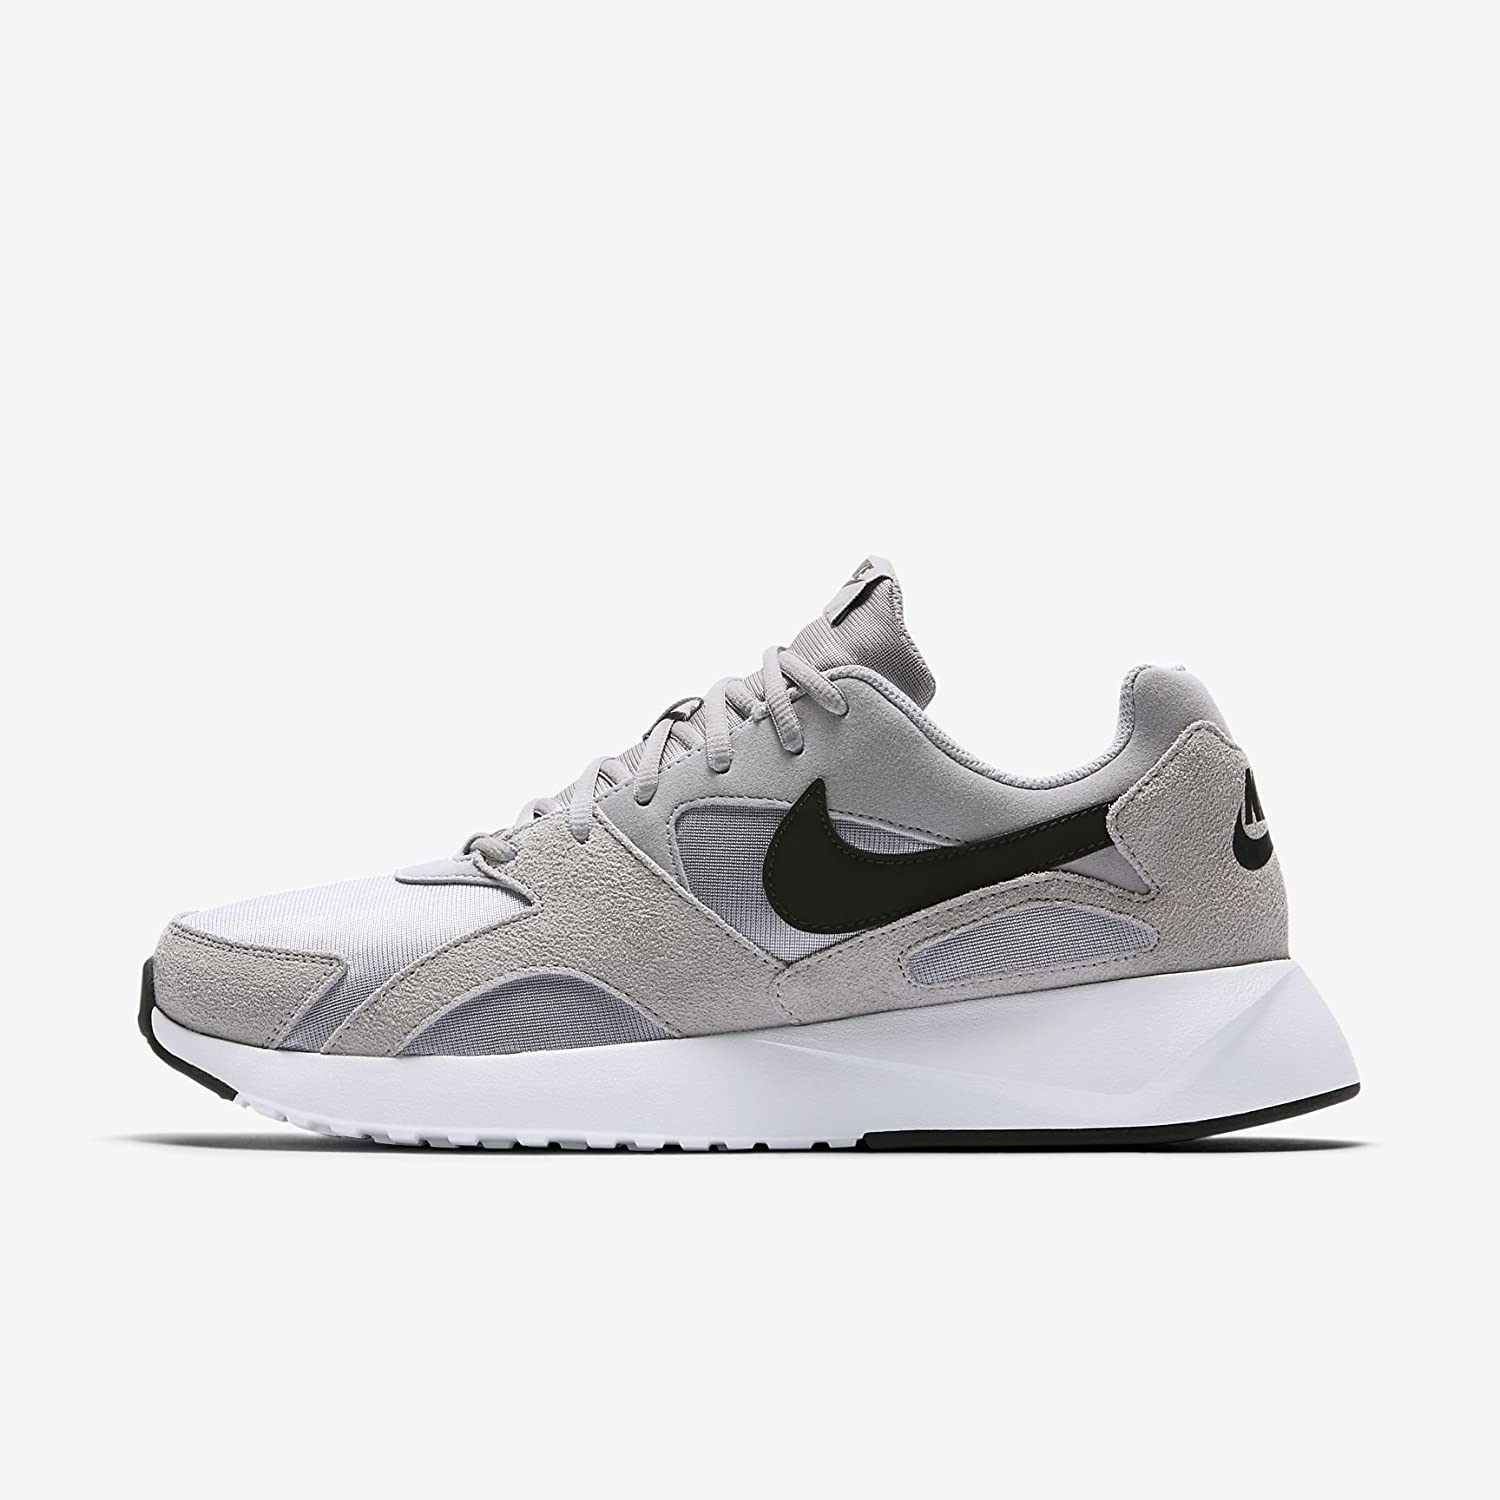 huge selection of 6b523 9a88e Nike Pantheos, Chaussures de Gymnastique Homme, Gris (Wolf Grey Black White